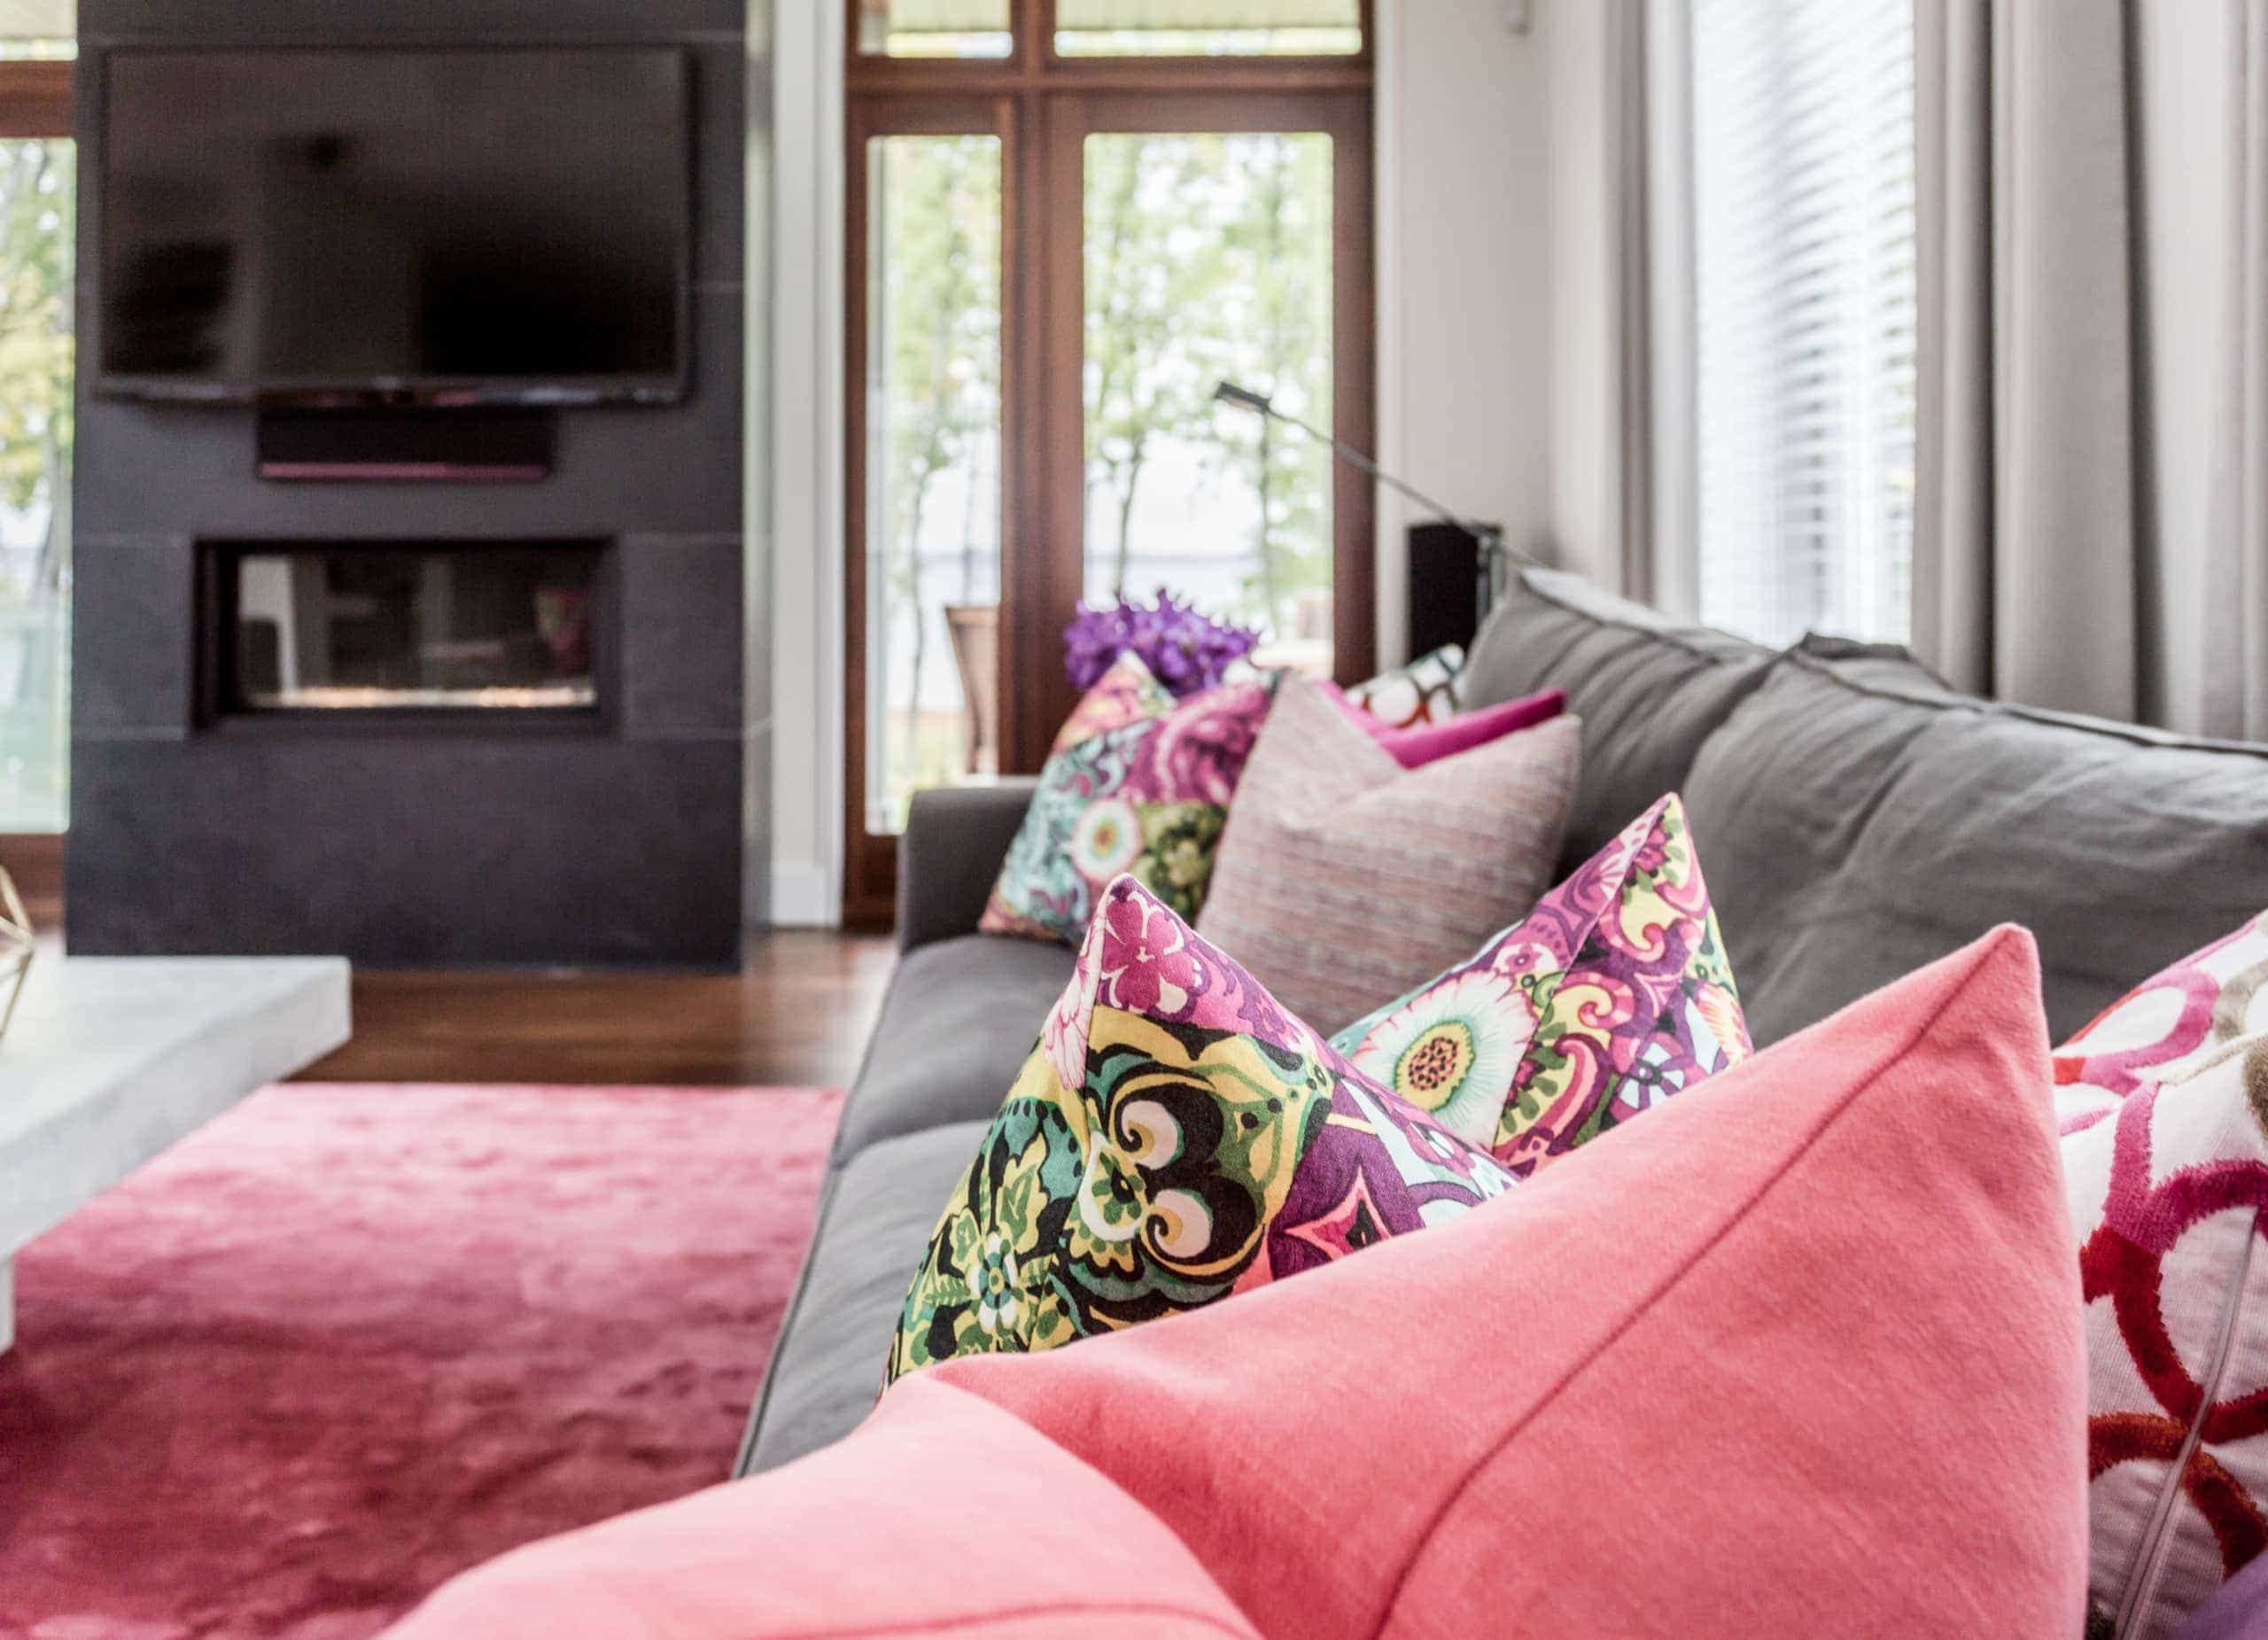 Gray couch with colorful pillows on it